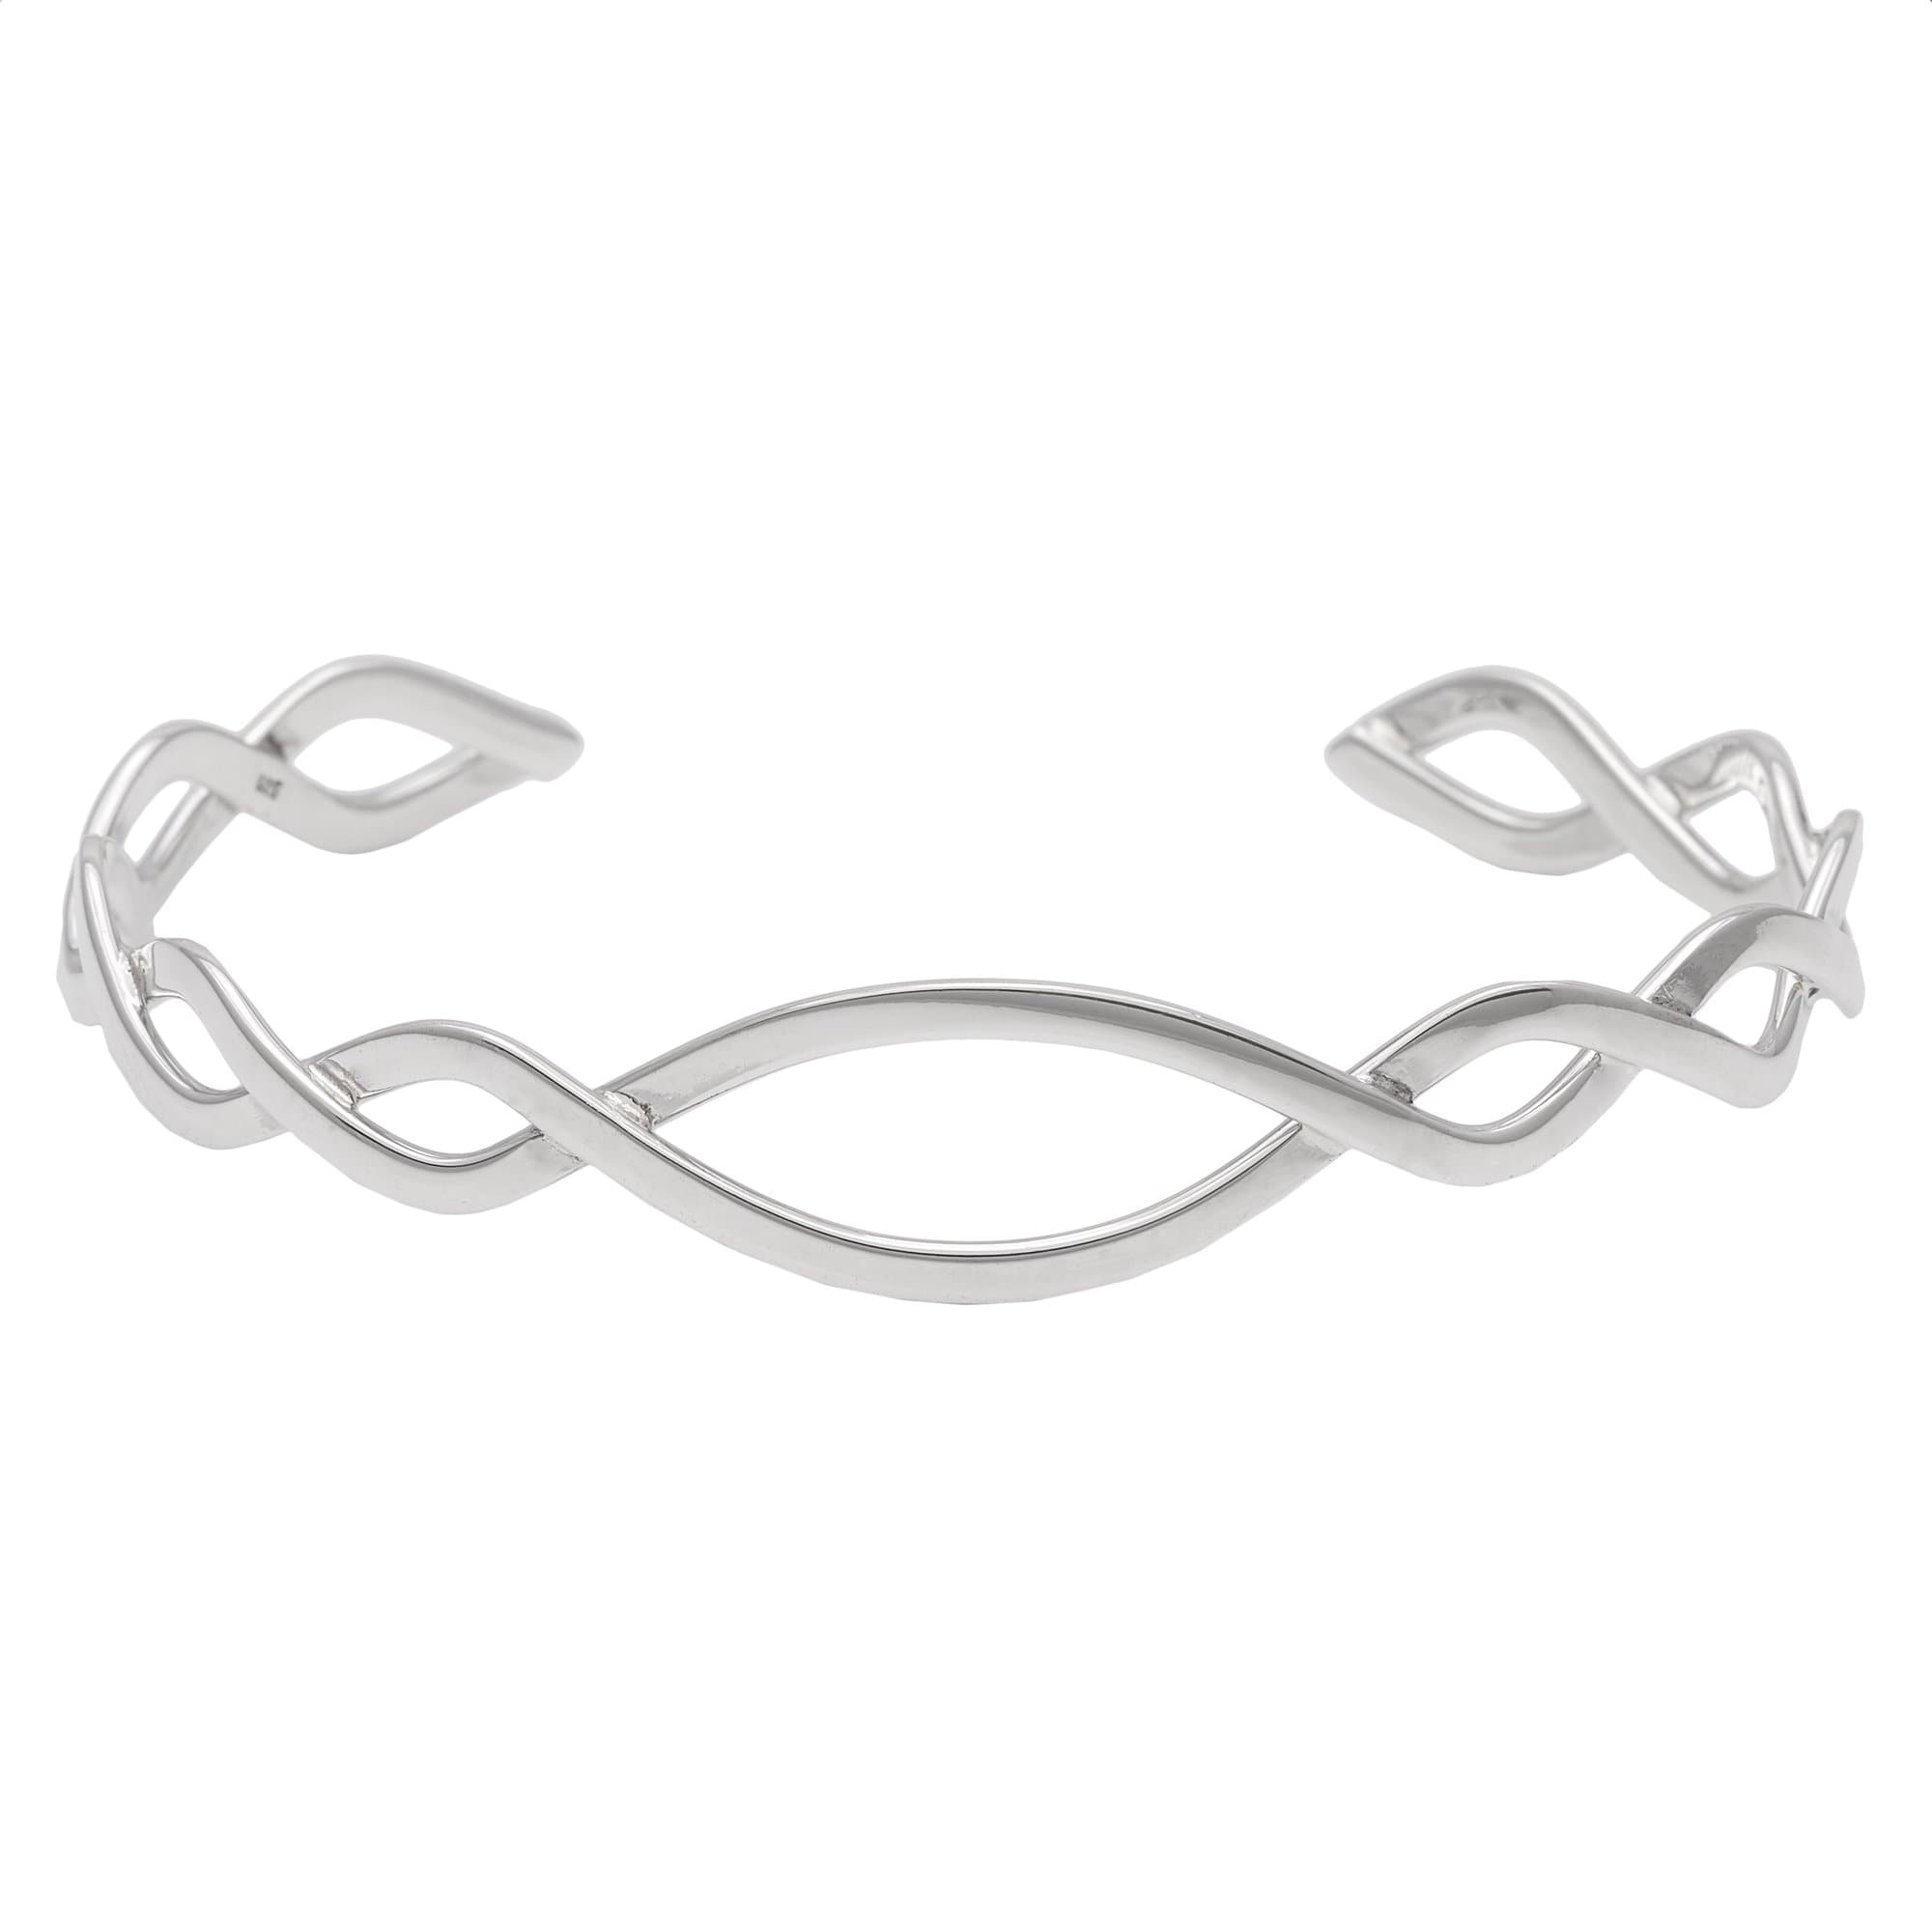 bangles sure genuine pin silver plain will knots the knot exceptional bangle bracelets quality celtic you bracelet love of our to are solid crafted sterling fit